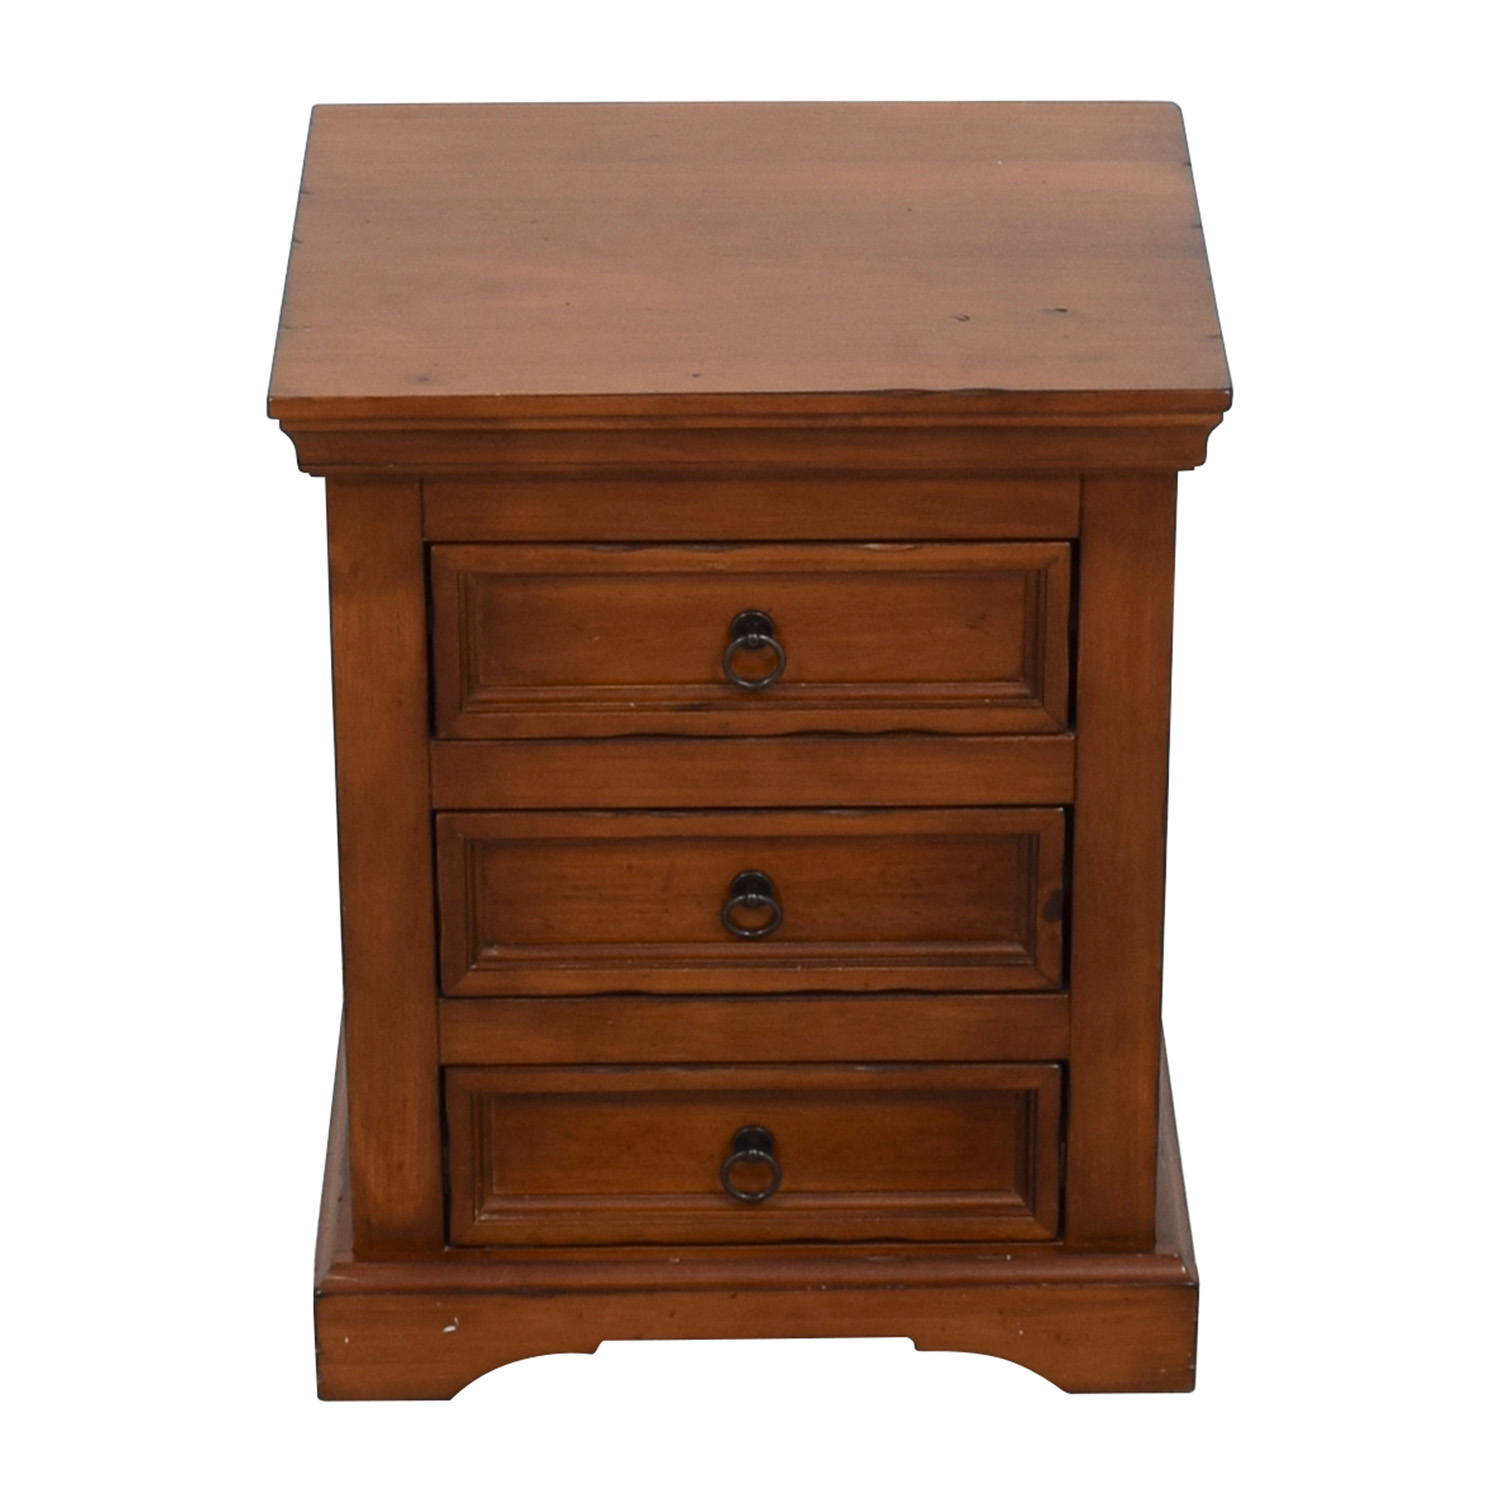 Pier 1 Imports Pier 1 Imports Three-Drawer Nightstand Tables